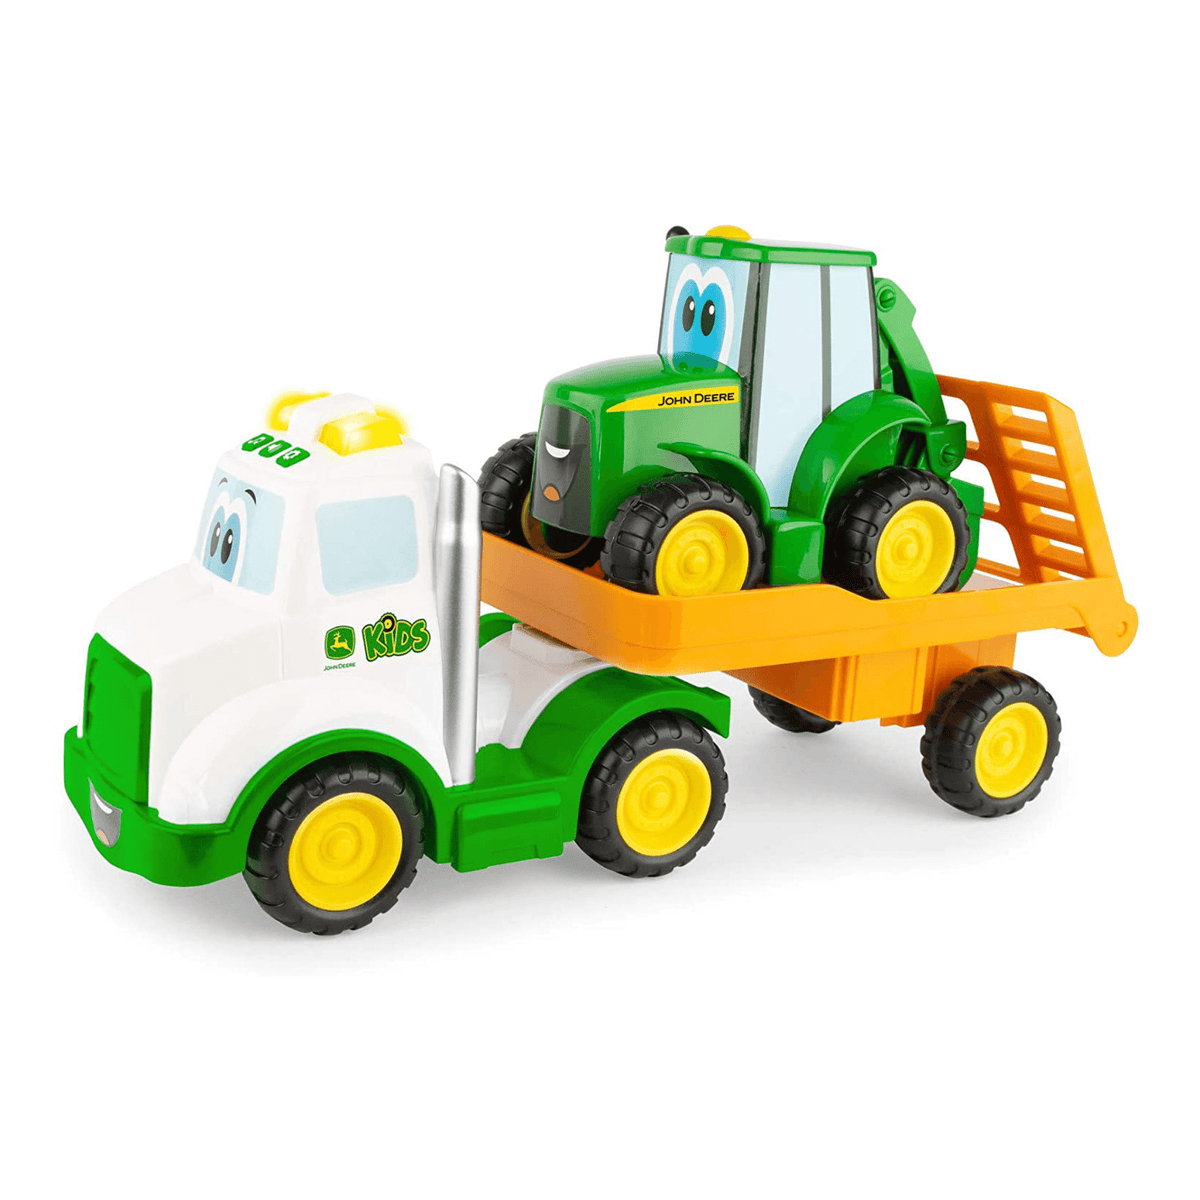 Tomy John Deere Farming Friends Hauling Set